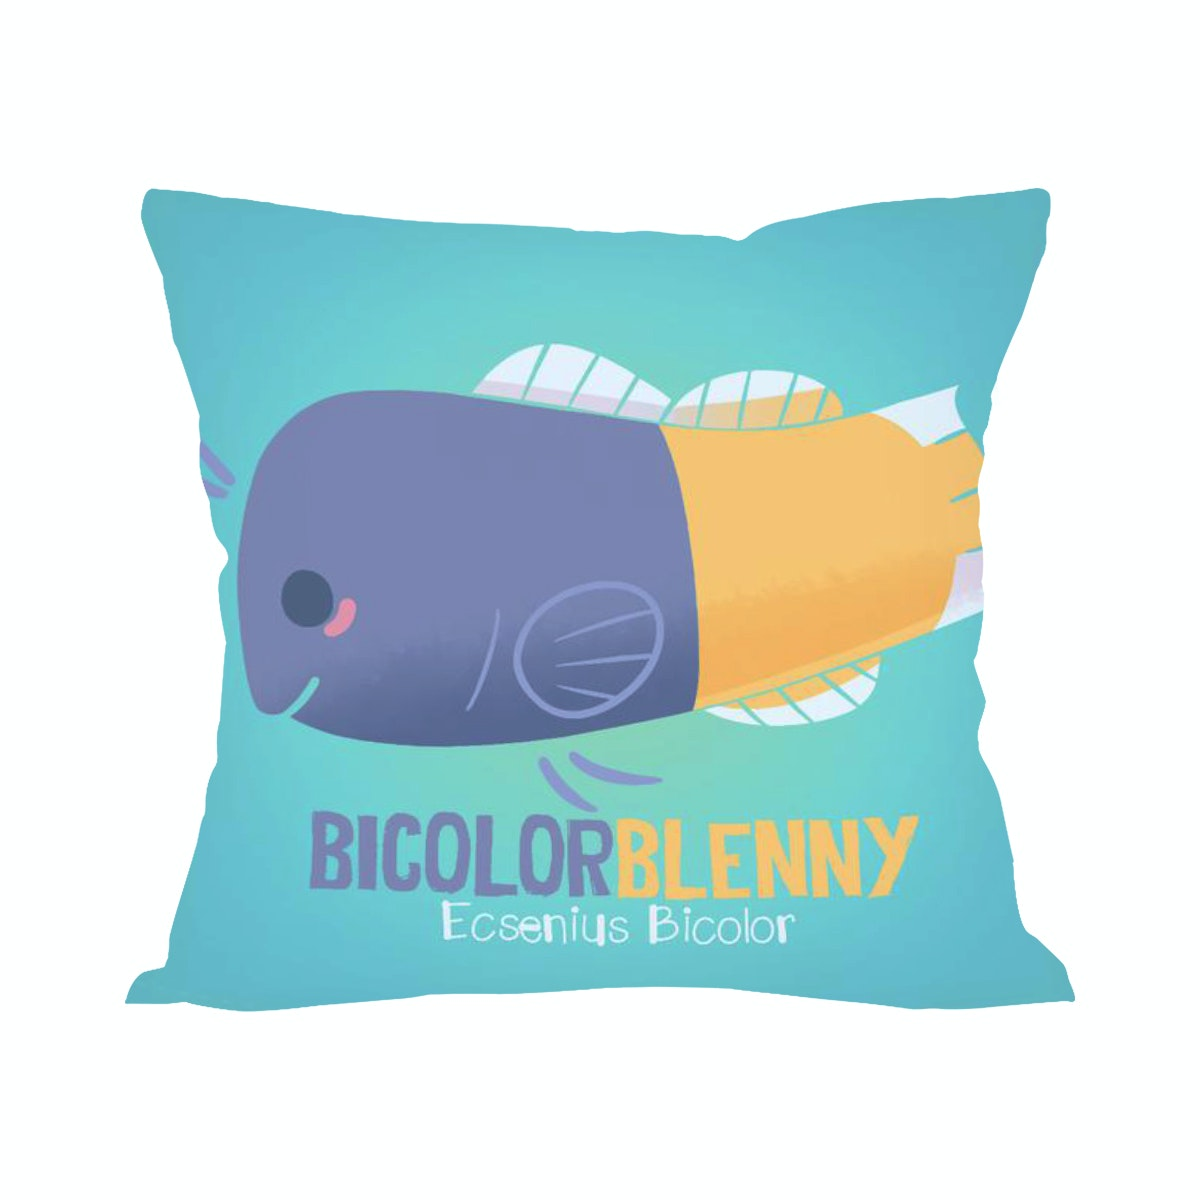 Tees Bicolor Blenny (Insert+Cushion Cover 40X40Cm)